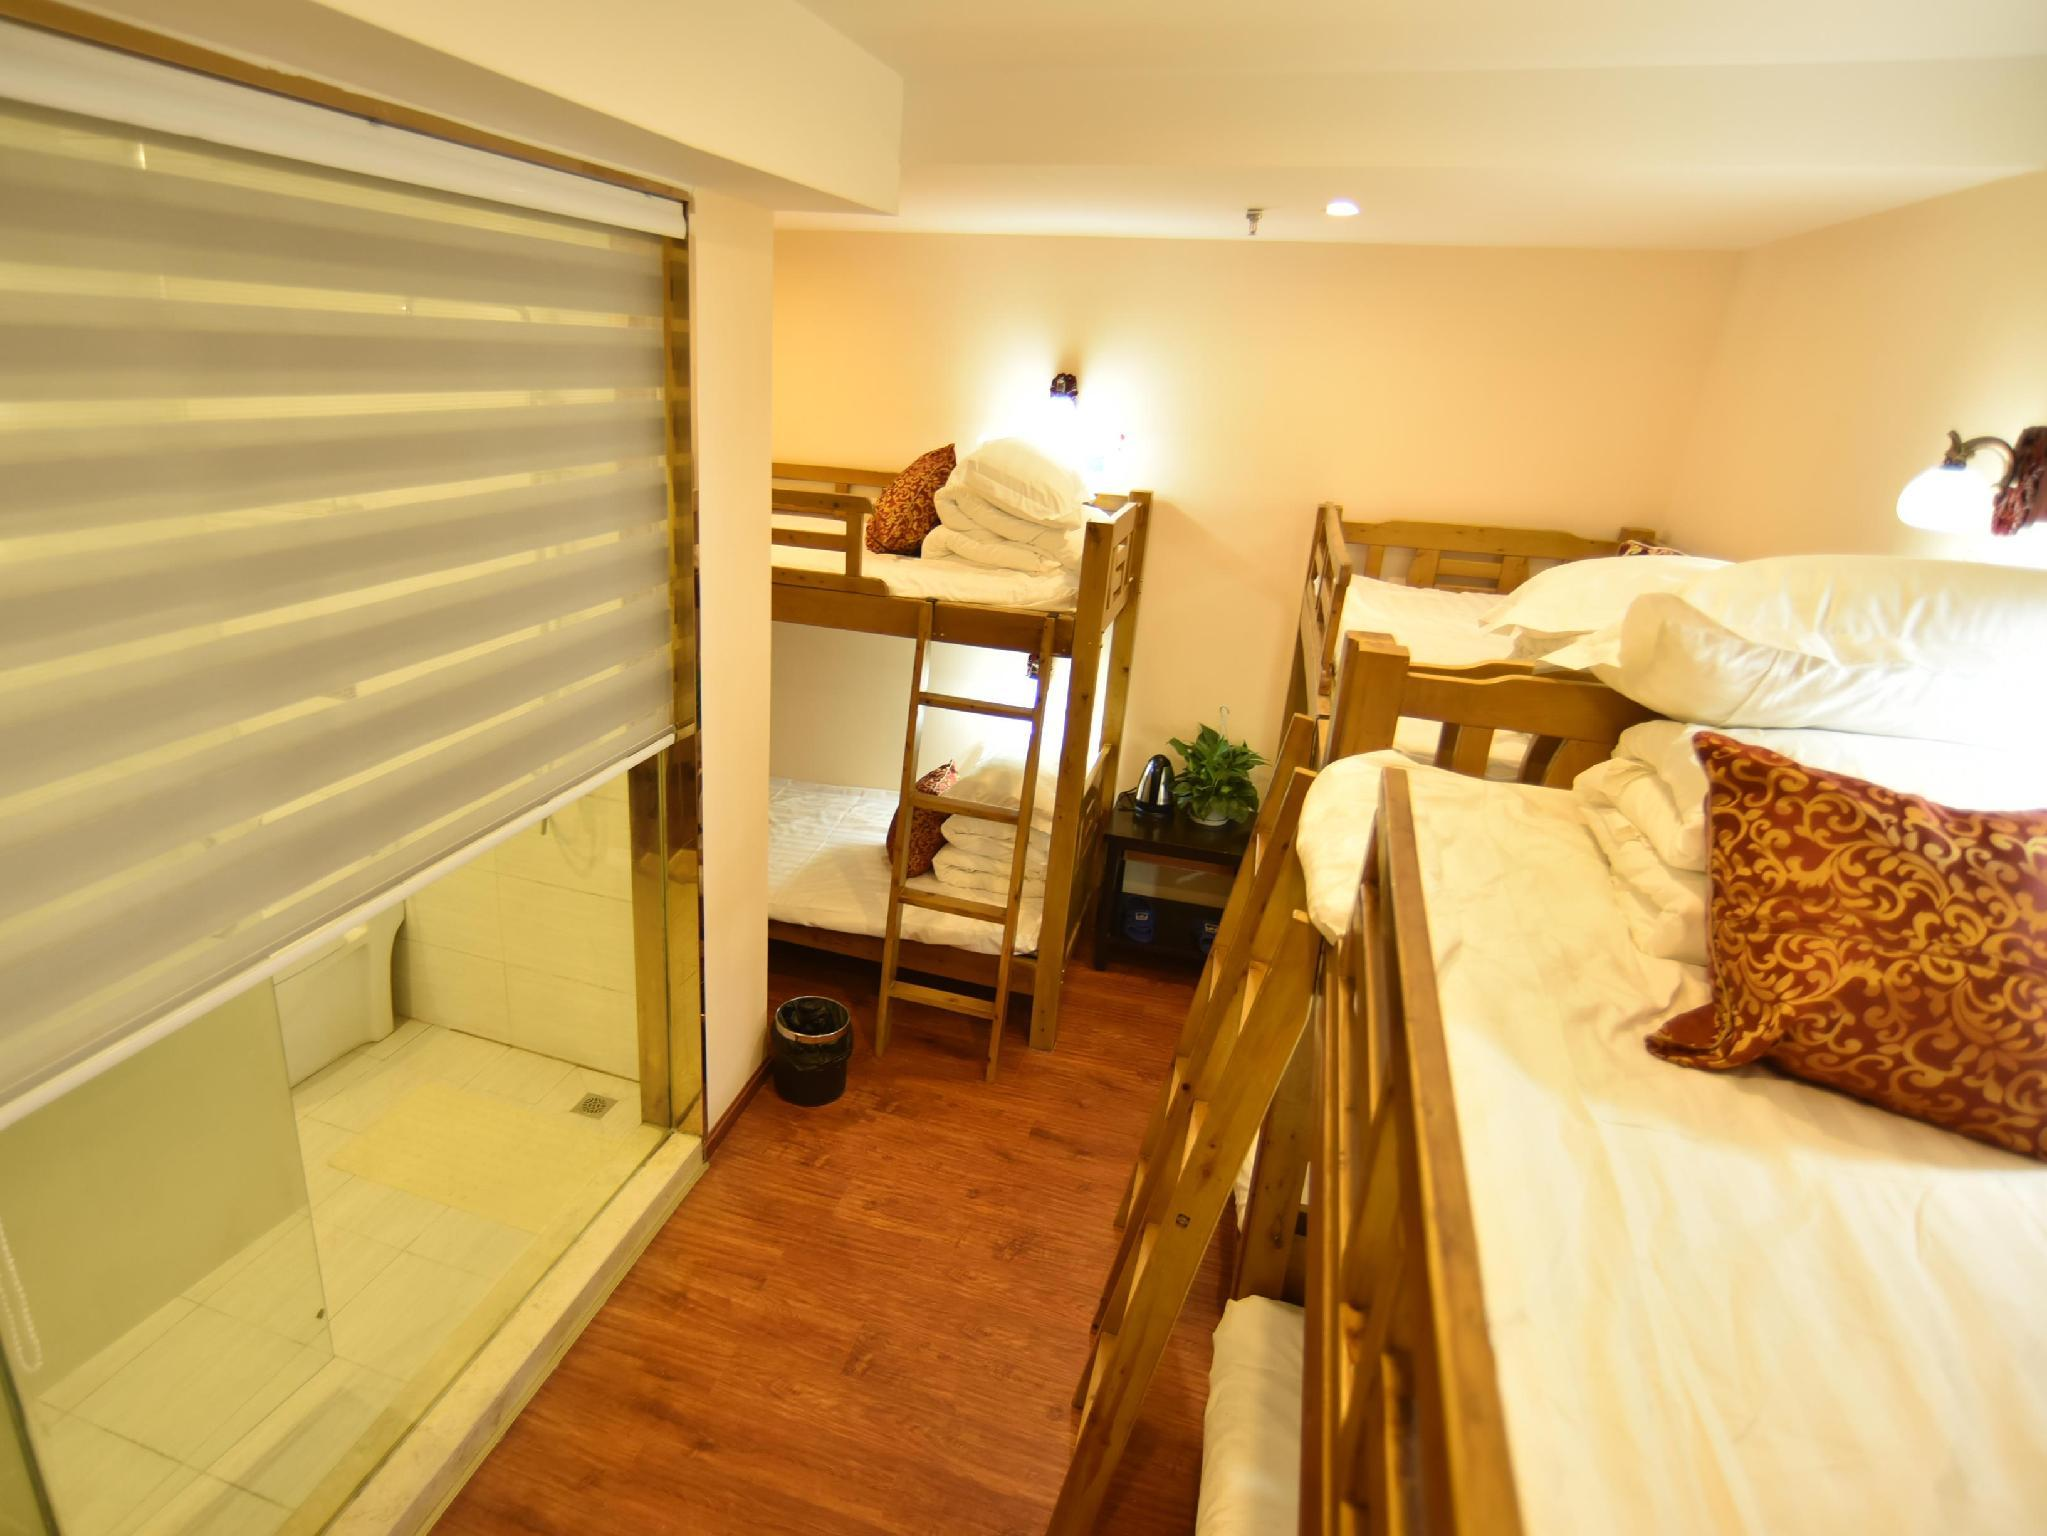 Six bed dormitory